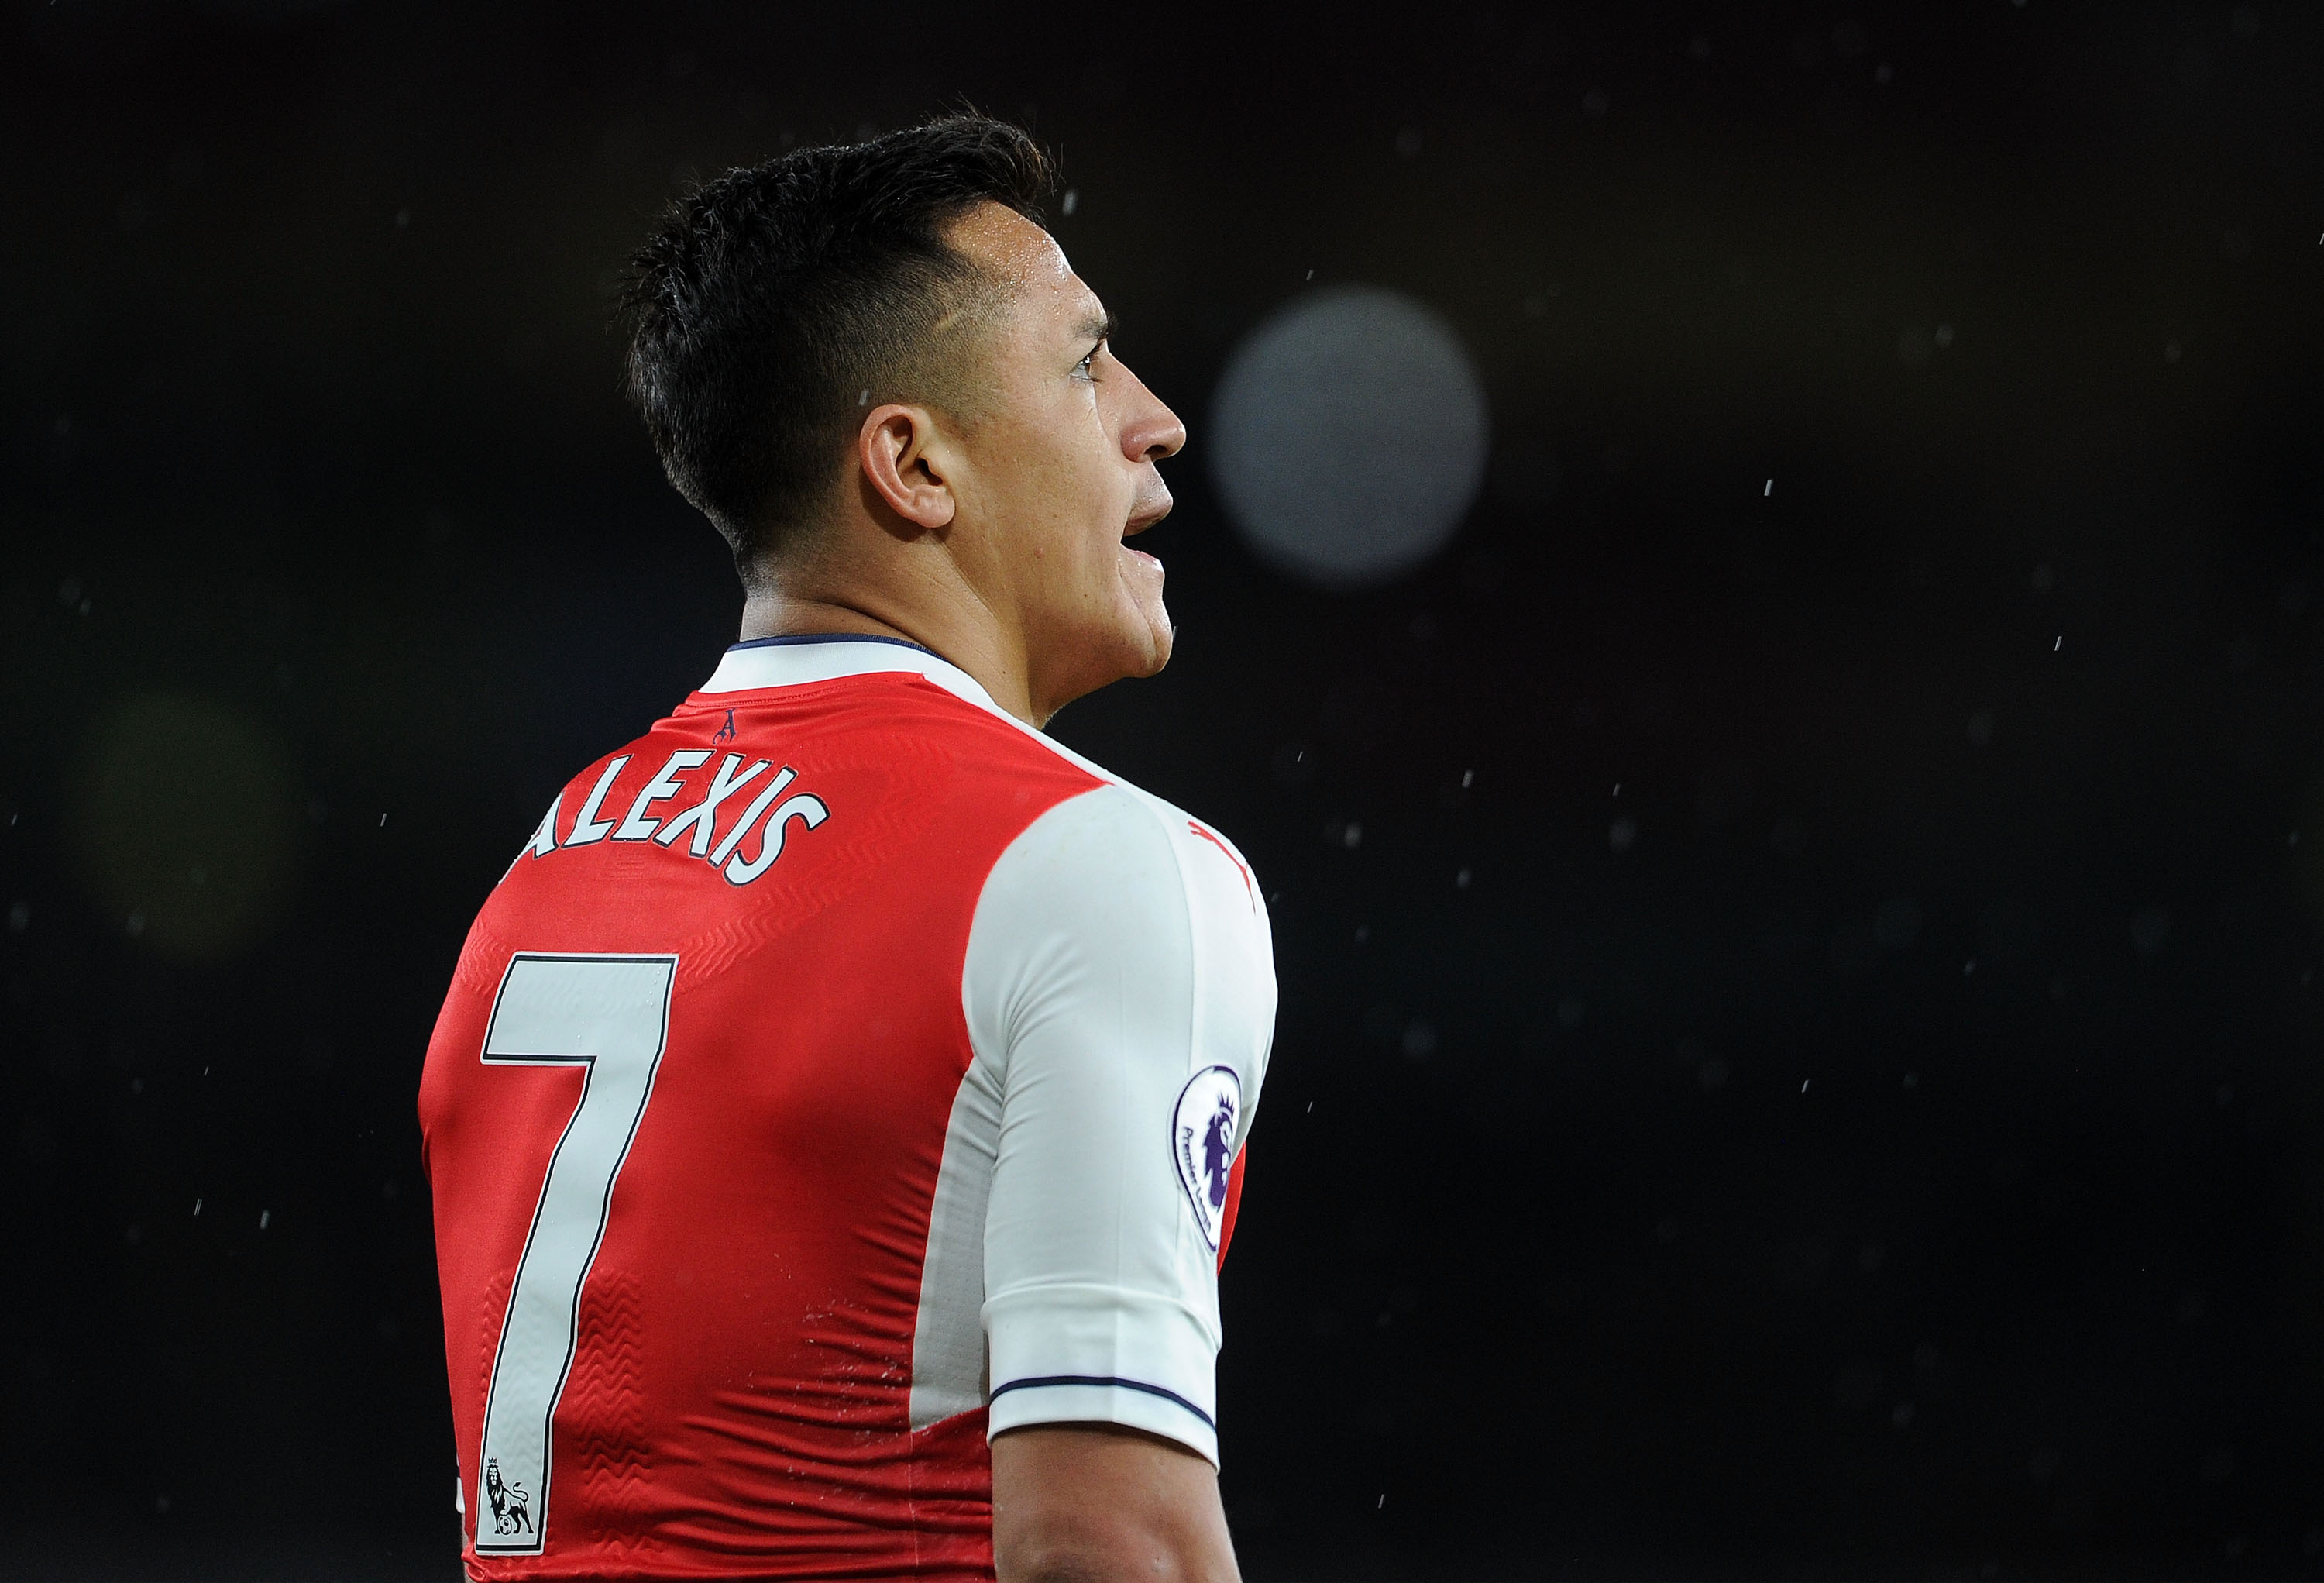 Arsenal star Alexis Sanchez included in Chile's Confederations Cup squad